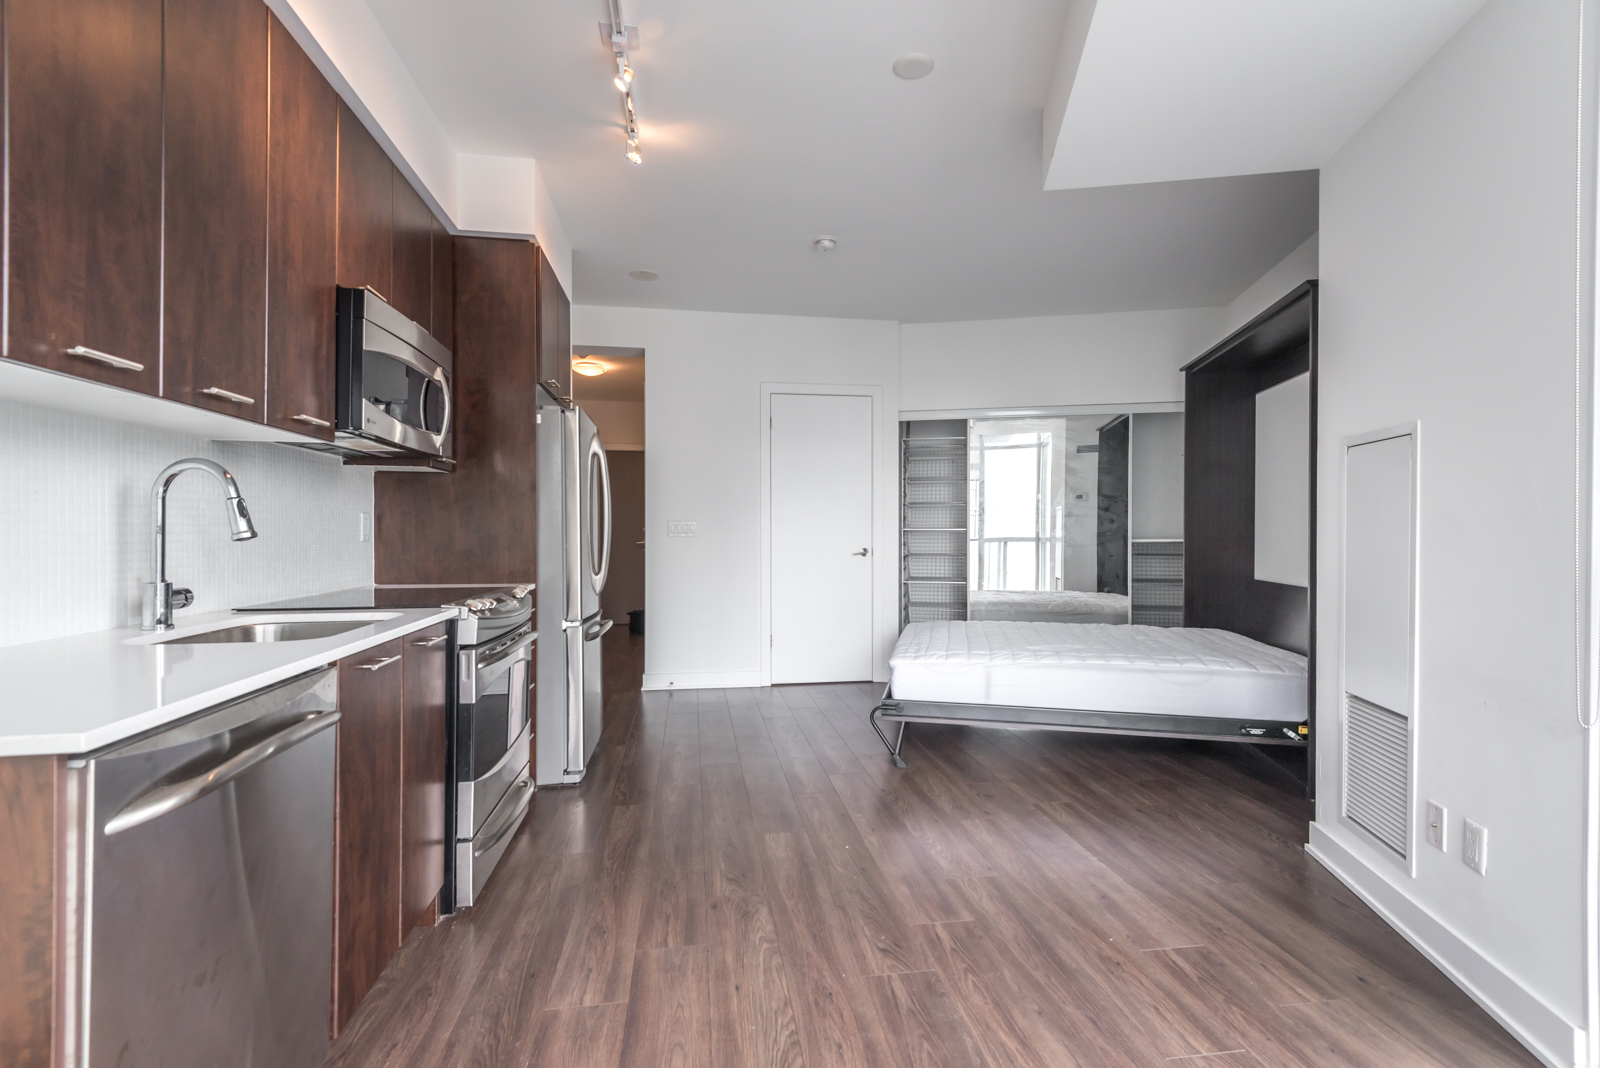 Image of condo showing kitchen, open bed, and also the brown floors.